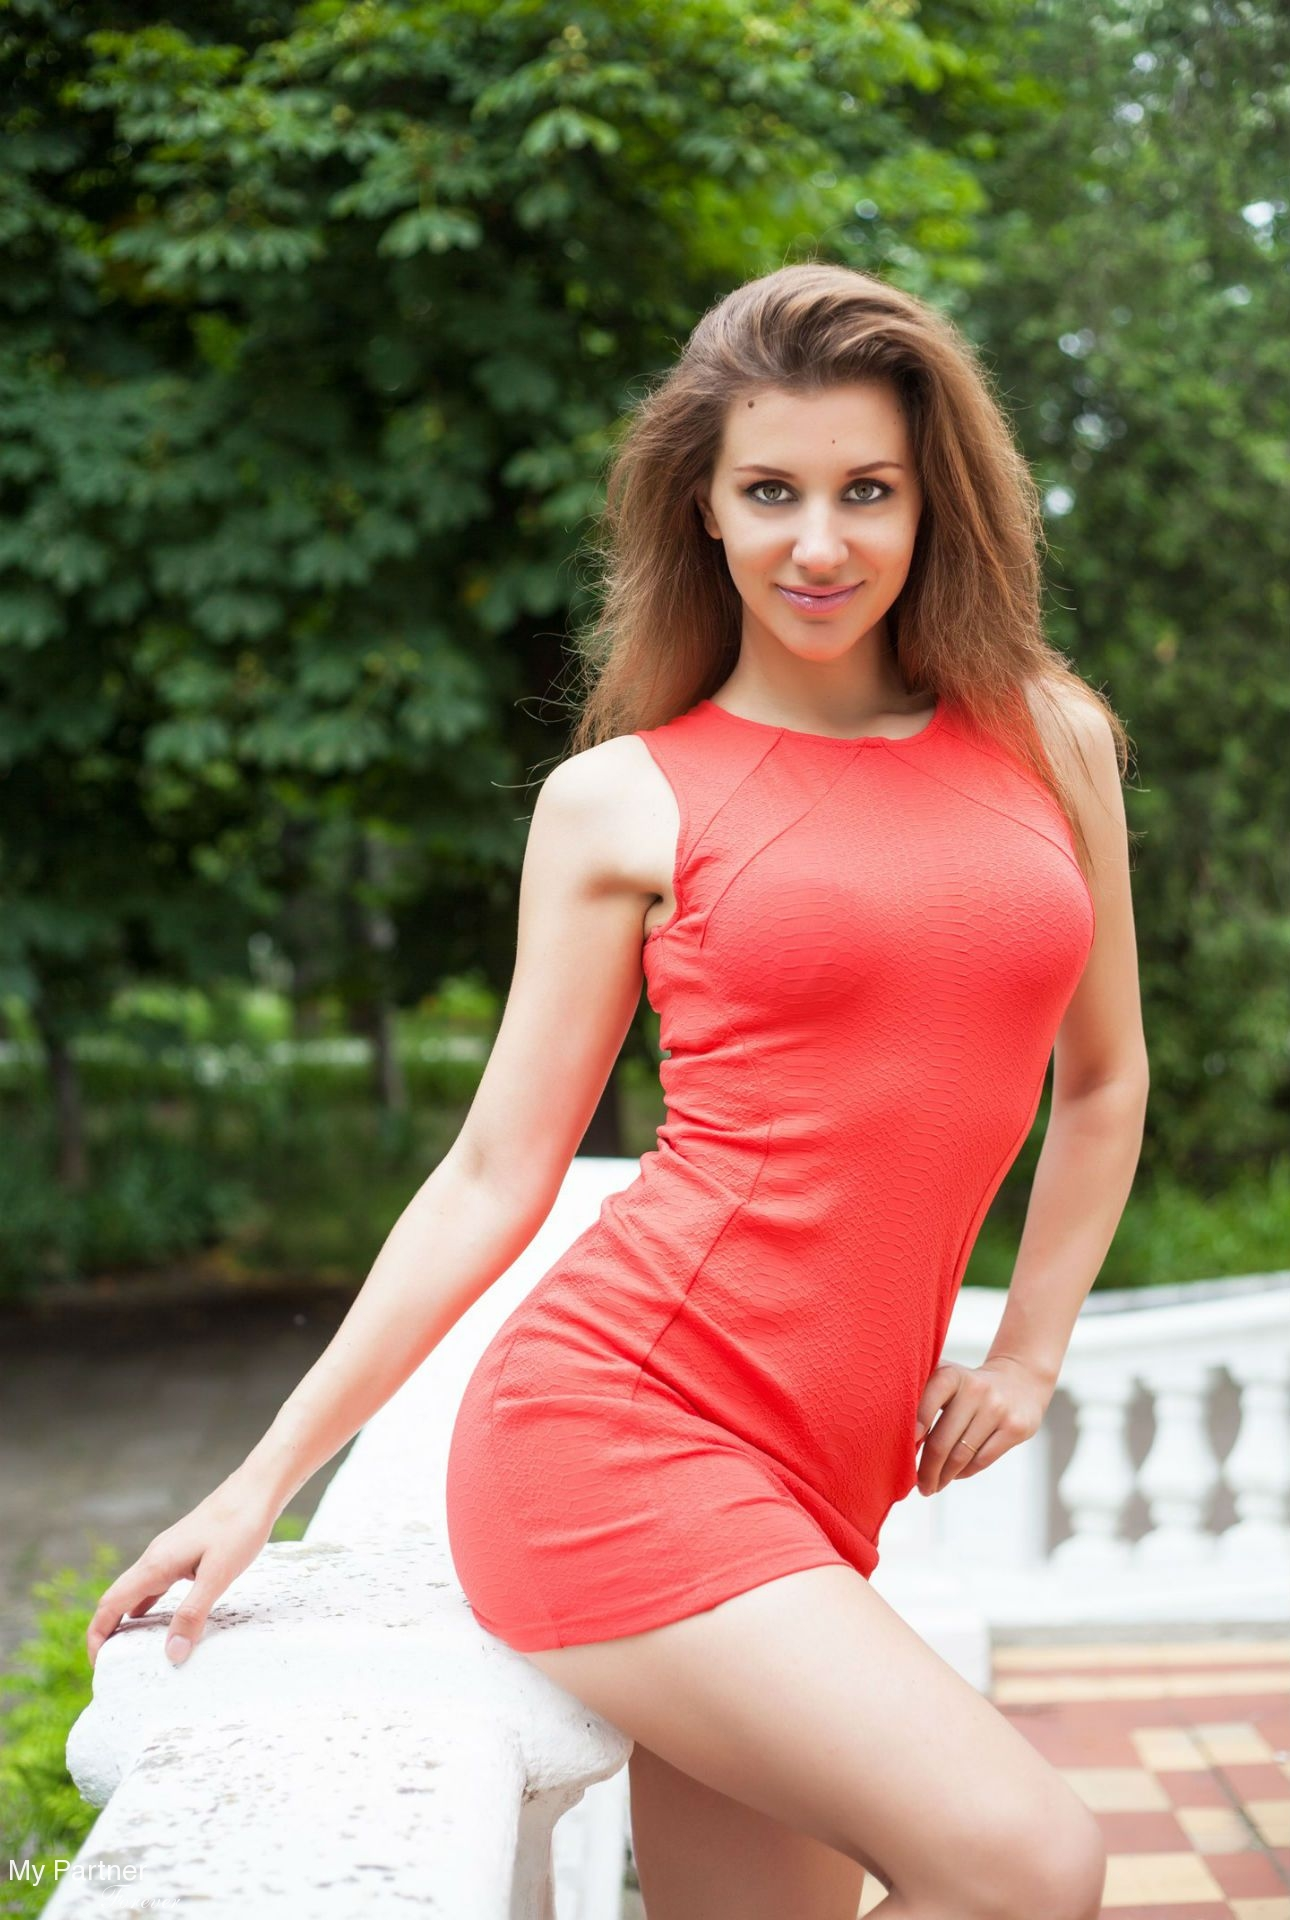 ukarine dating